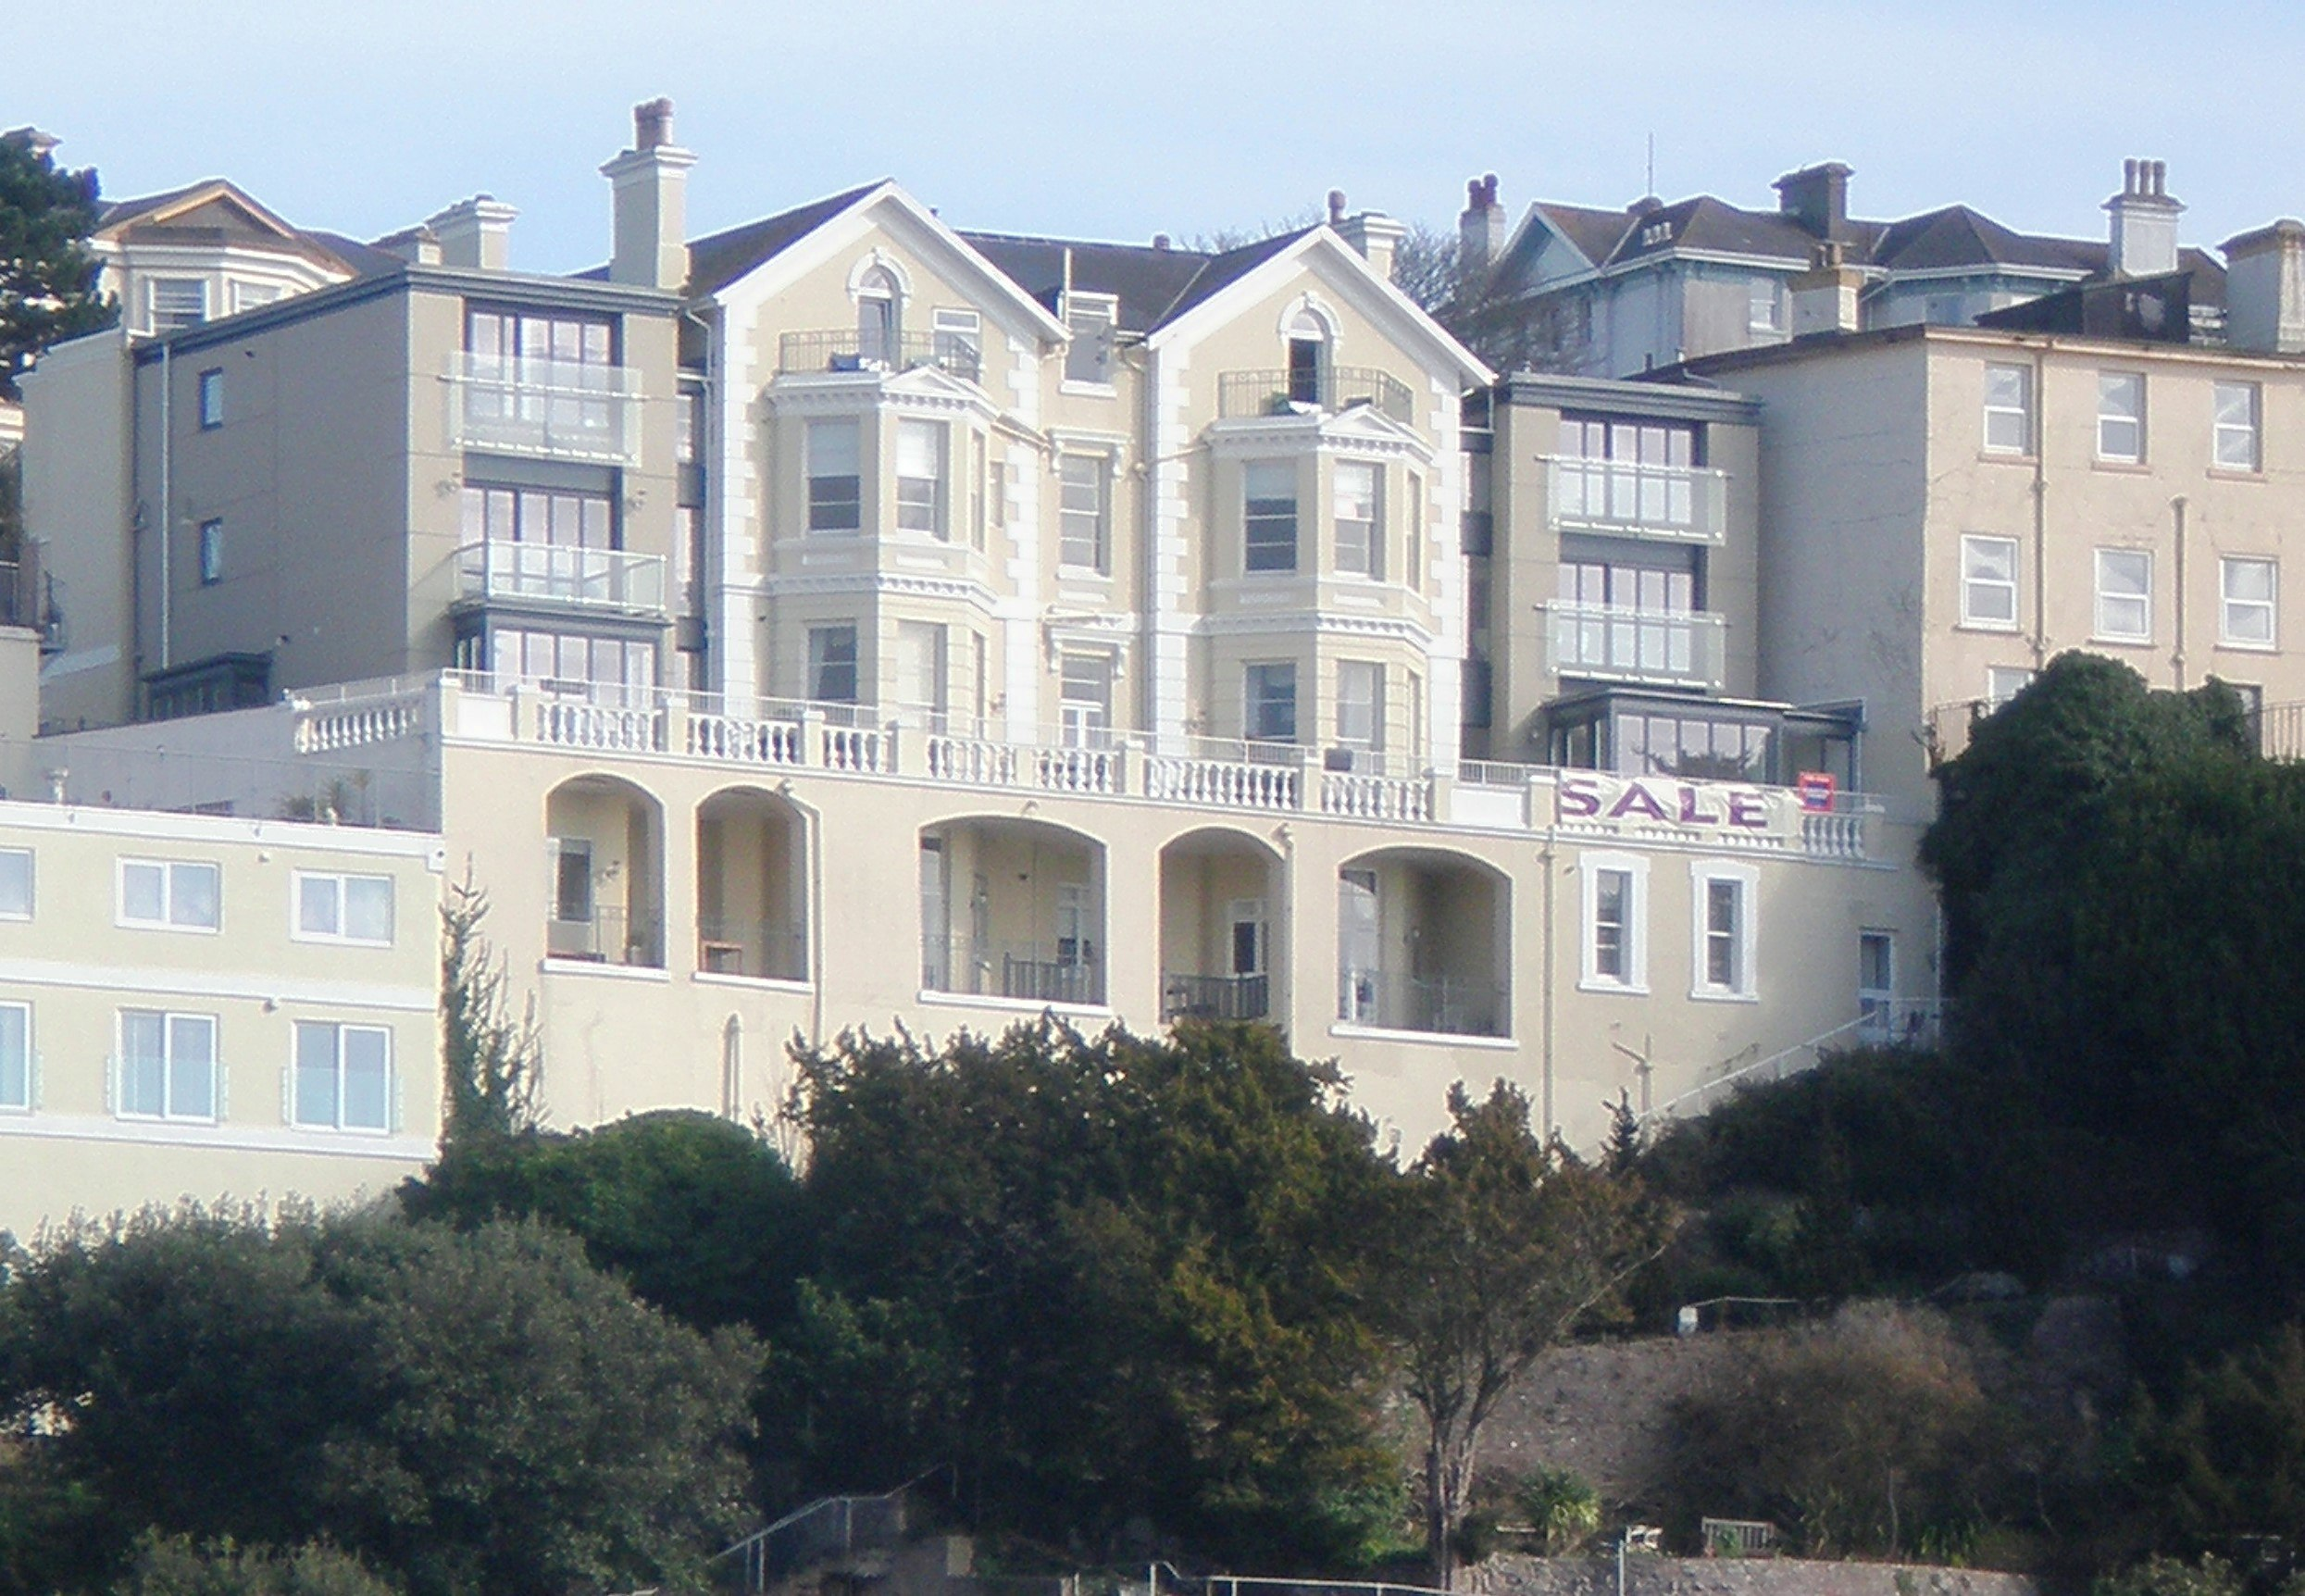 View of the rear of the apartment building overlooking Torquay marina and towards Brixham